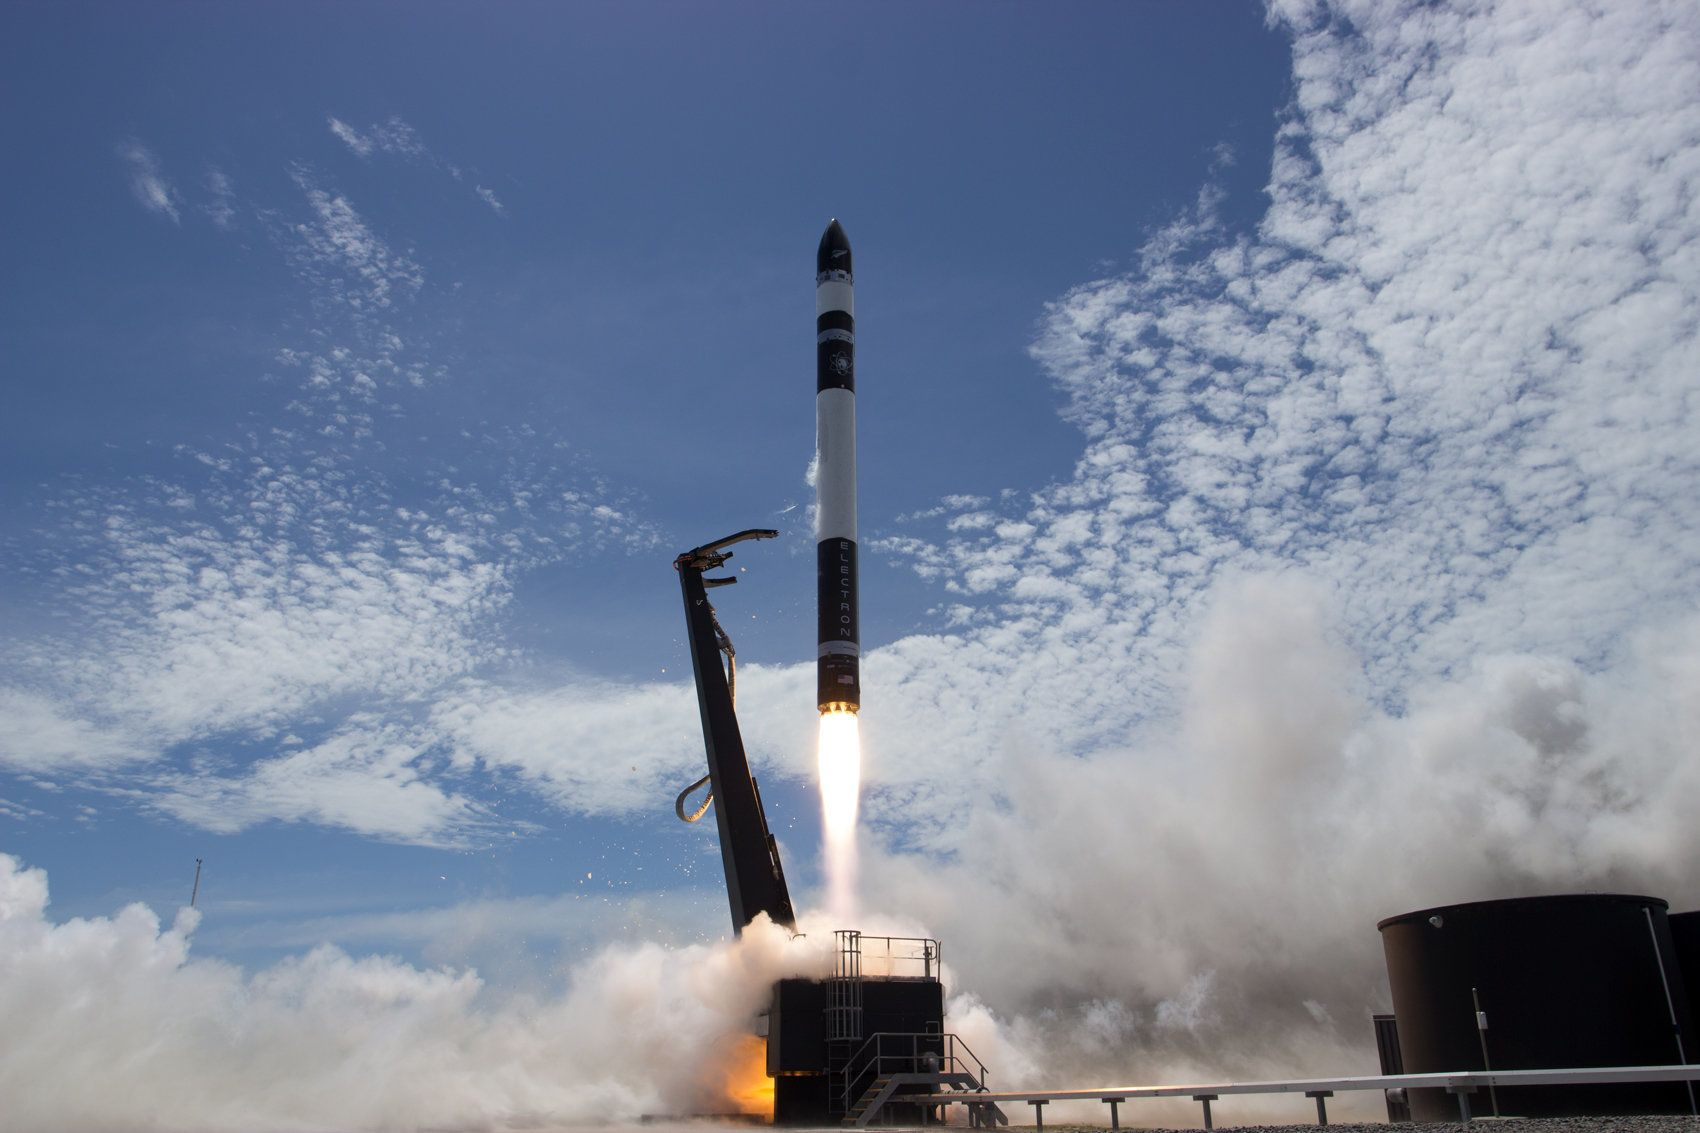 New Zealand Just Became The 11th Country To Send A Rocket Into